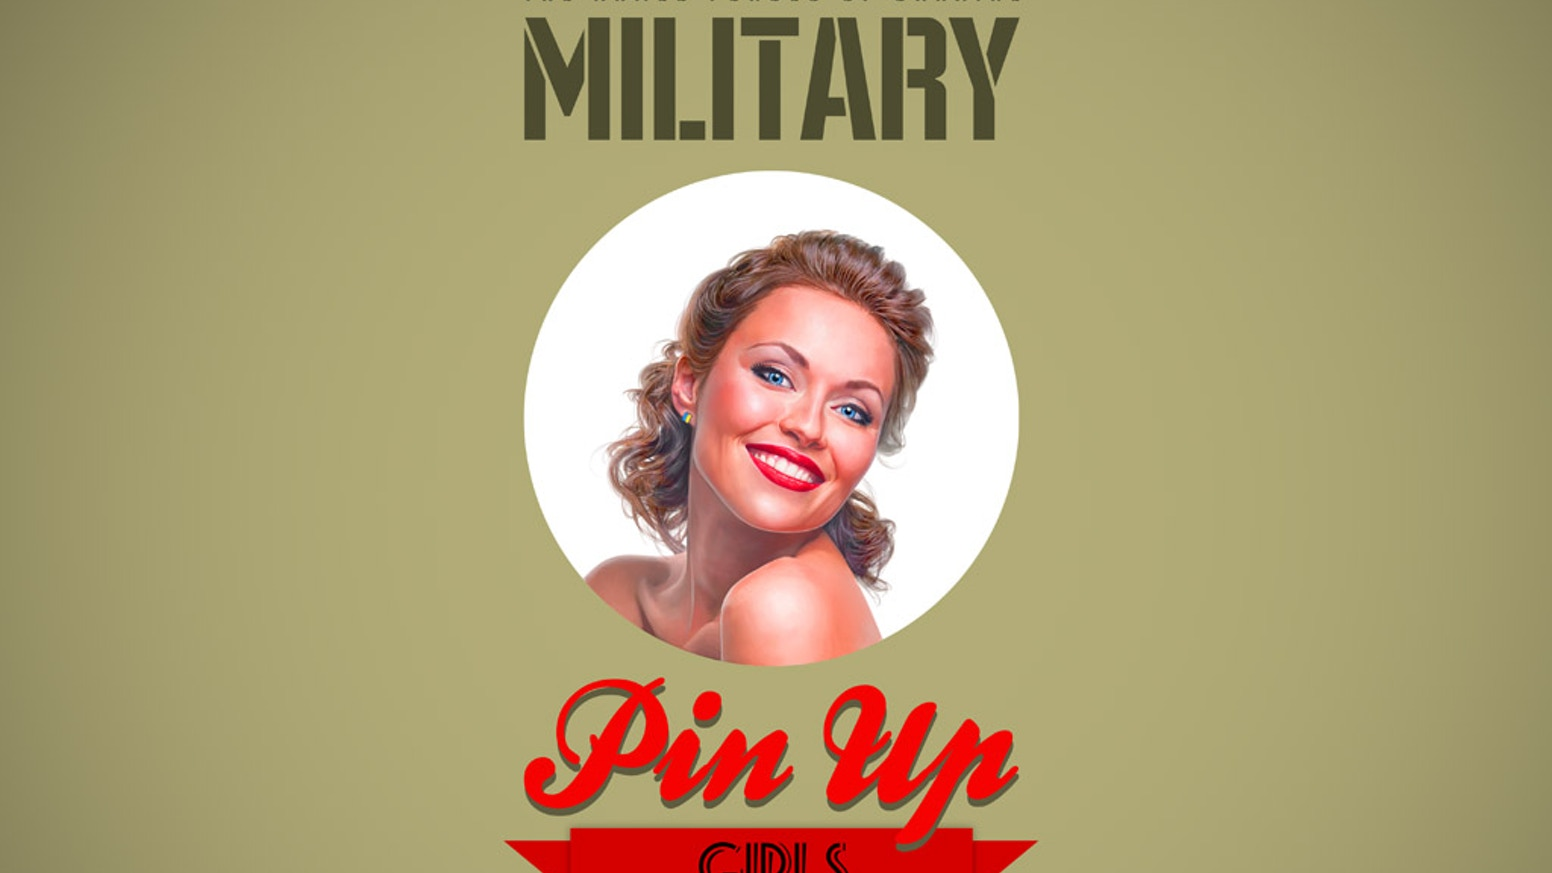 Military Pin Up Girls calendar to support the Armed Forces of Ukraine